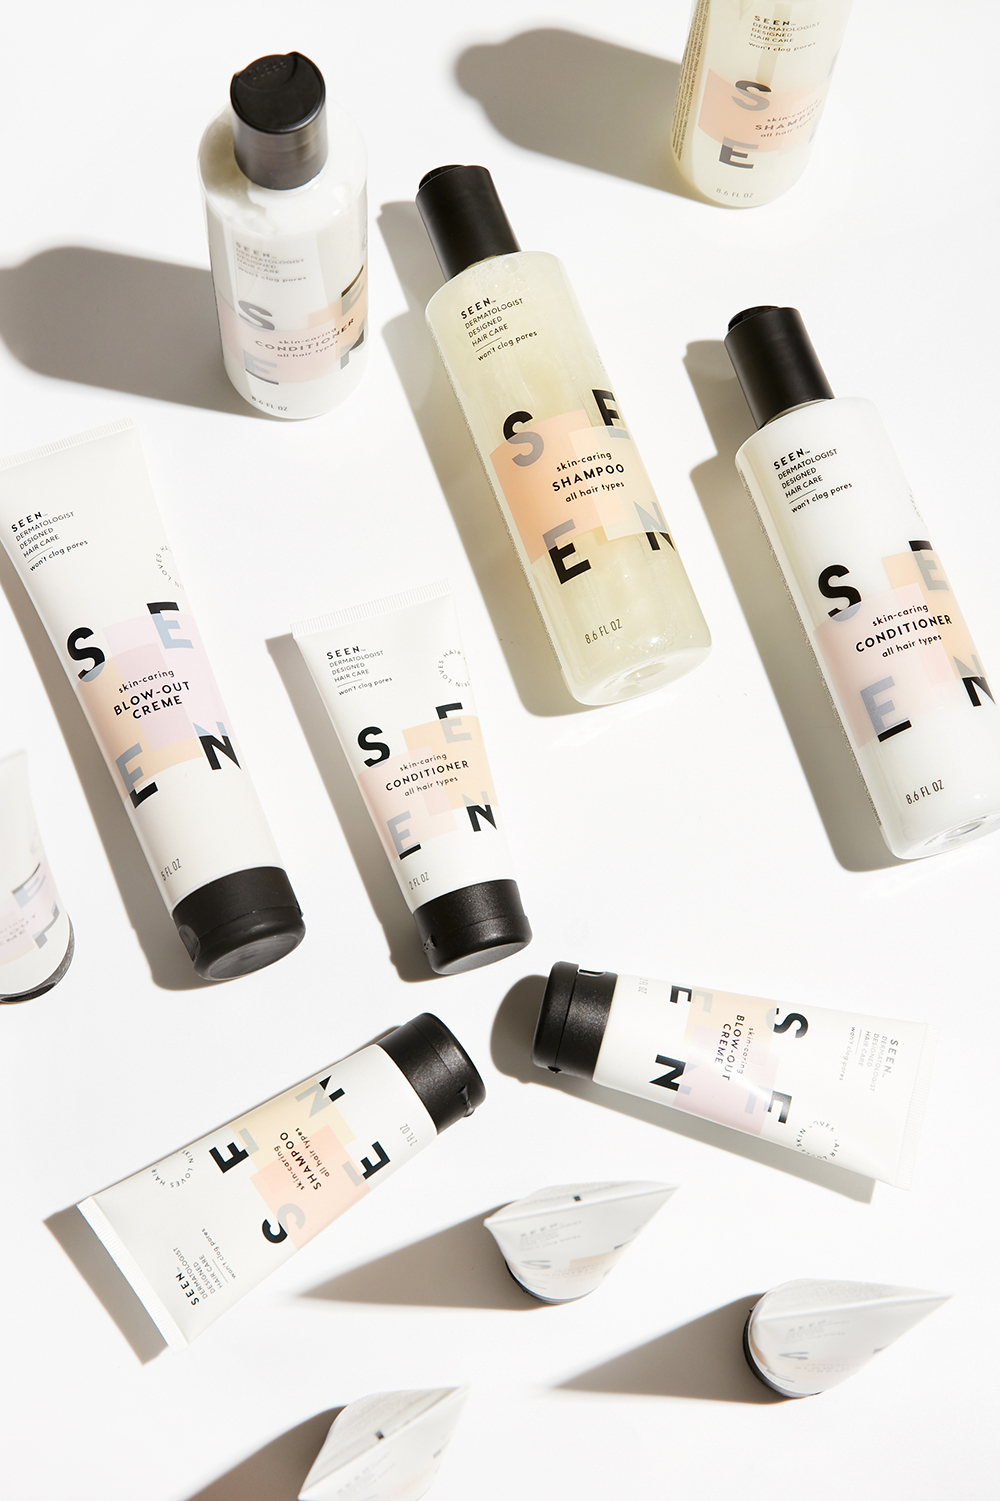 SEEN Hair Care was founded by Harvard-trained dermatologist Dr. Iris Rubin, and all the products are tested and proven to not clog pores or cause breakouts.